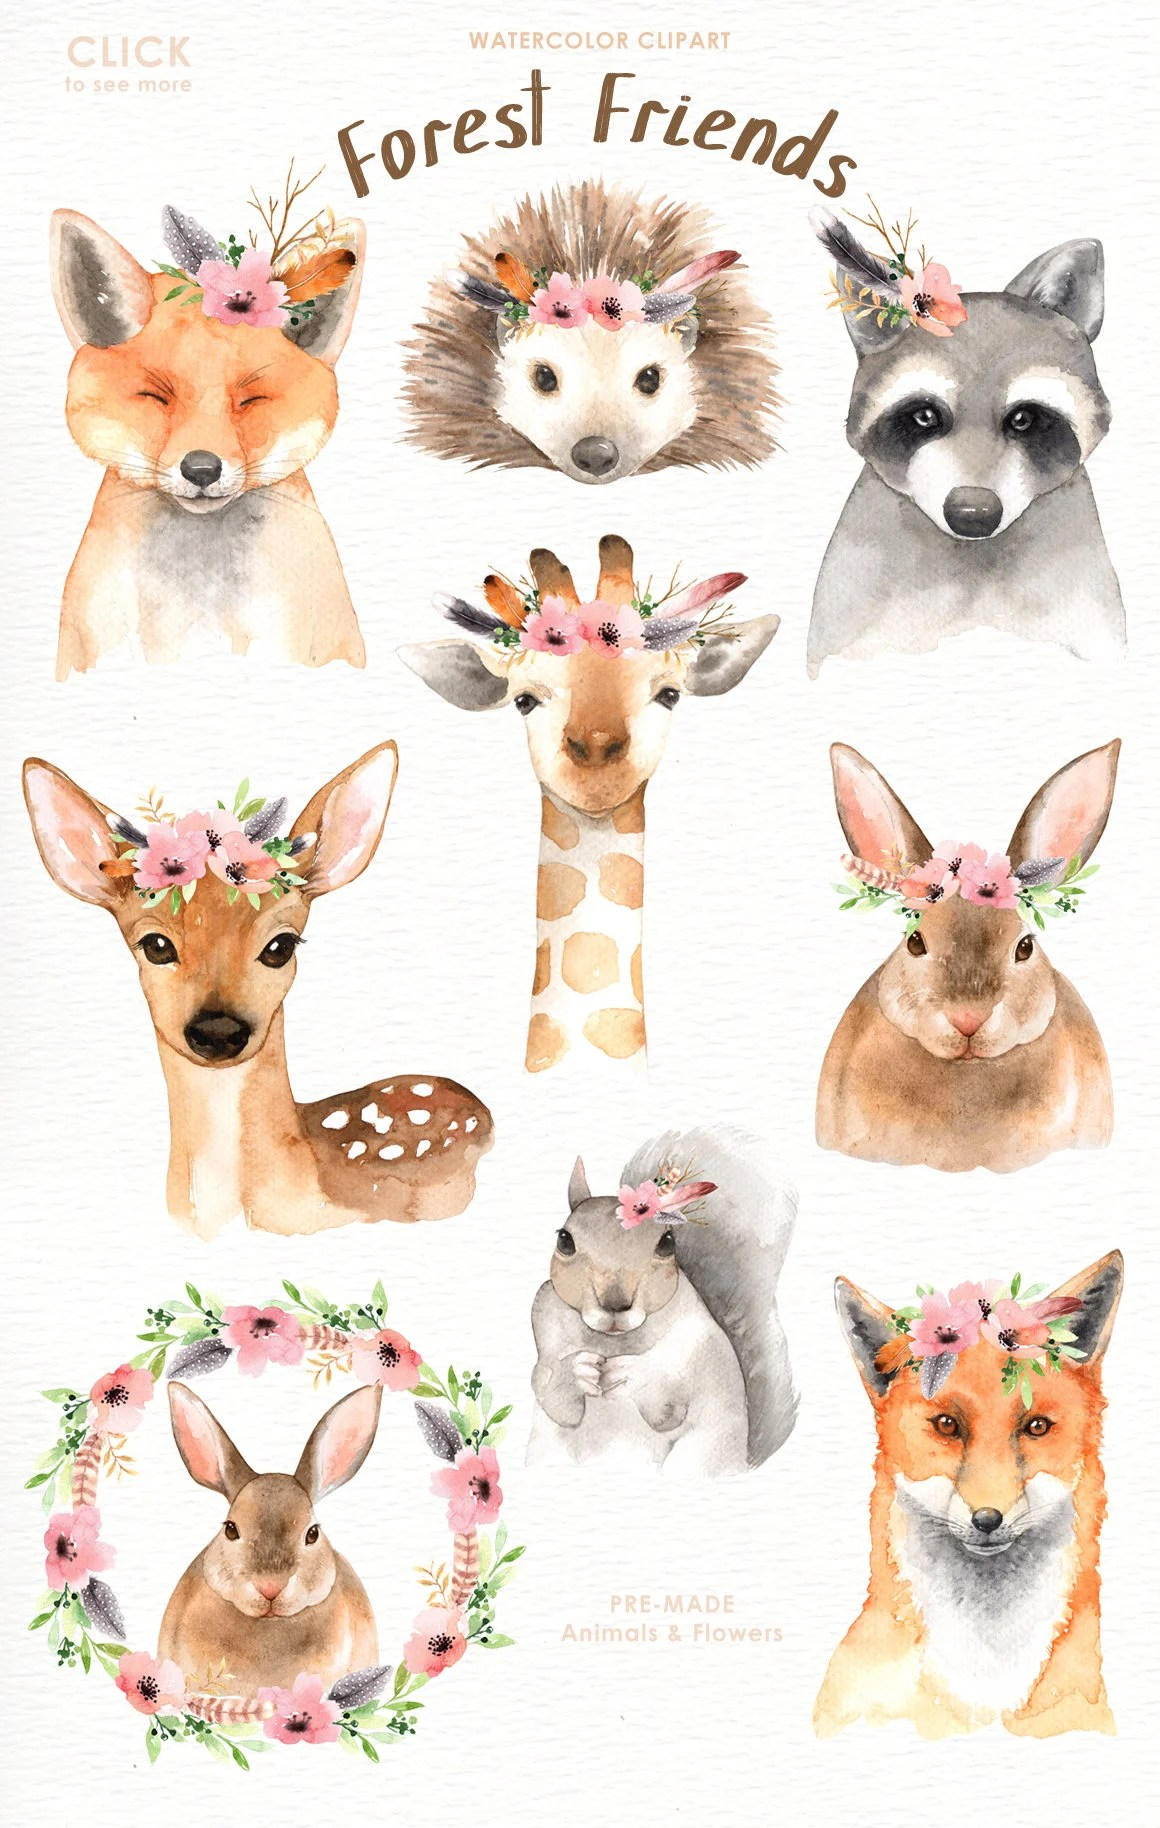 Cute Baby Pets Live Wallpaper Download Forest Friends Watercolor Clip Art Woodland Animals Kids